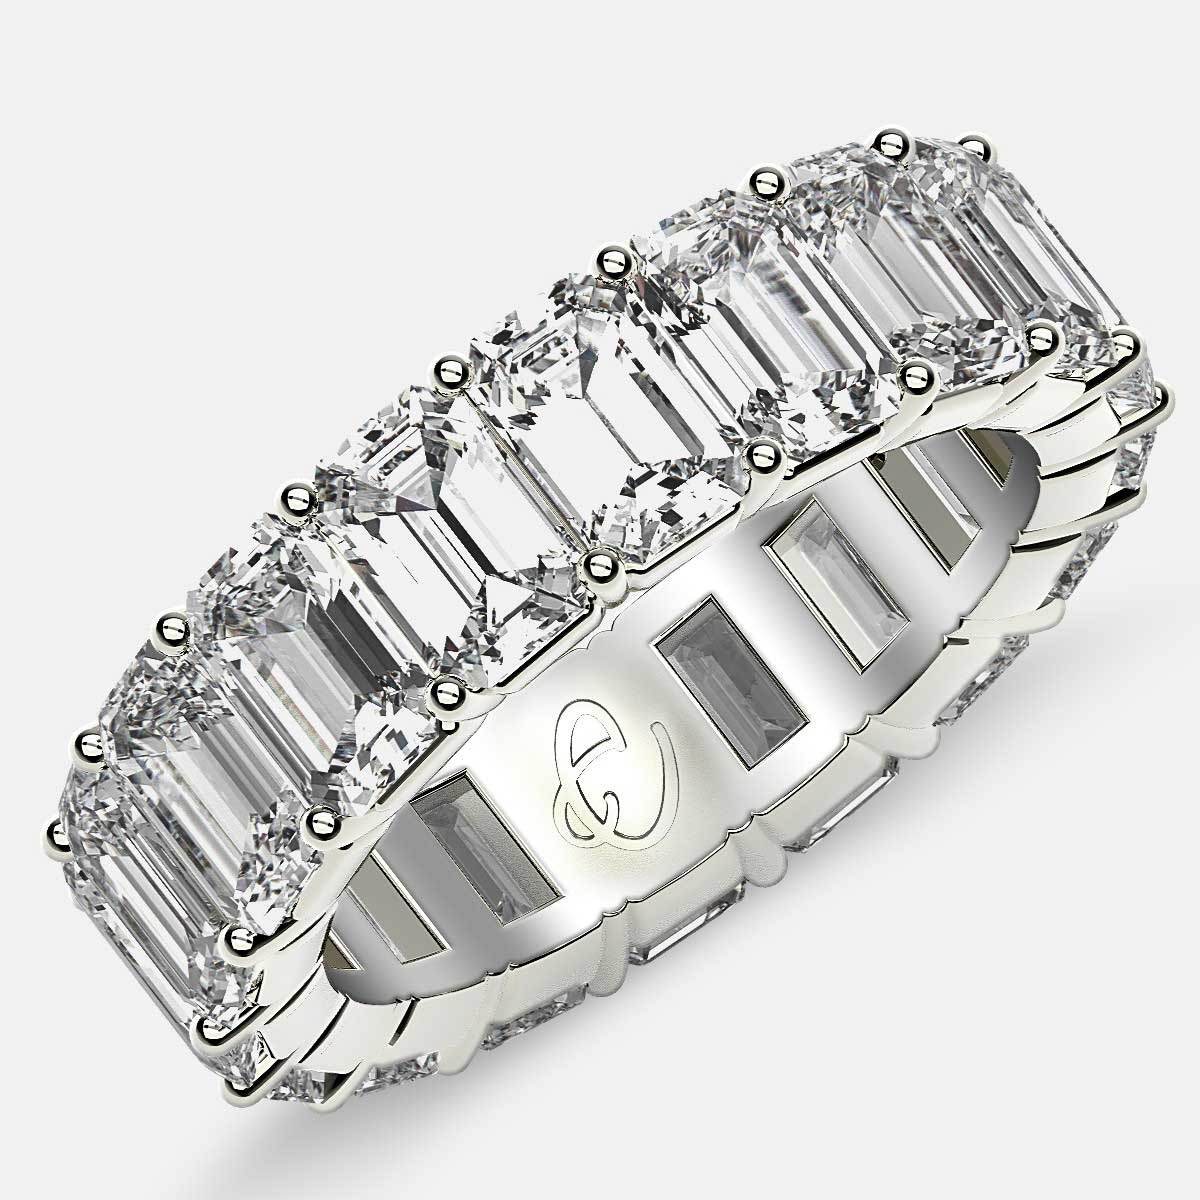 Classic Eternity Ring with Emerald Cut Diamonds in 18k White Gold